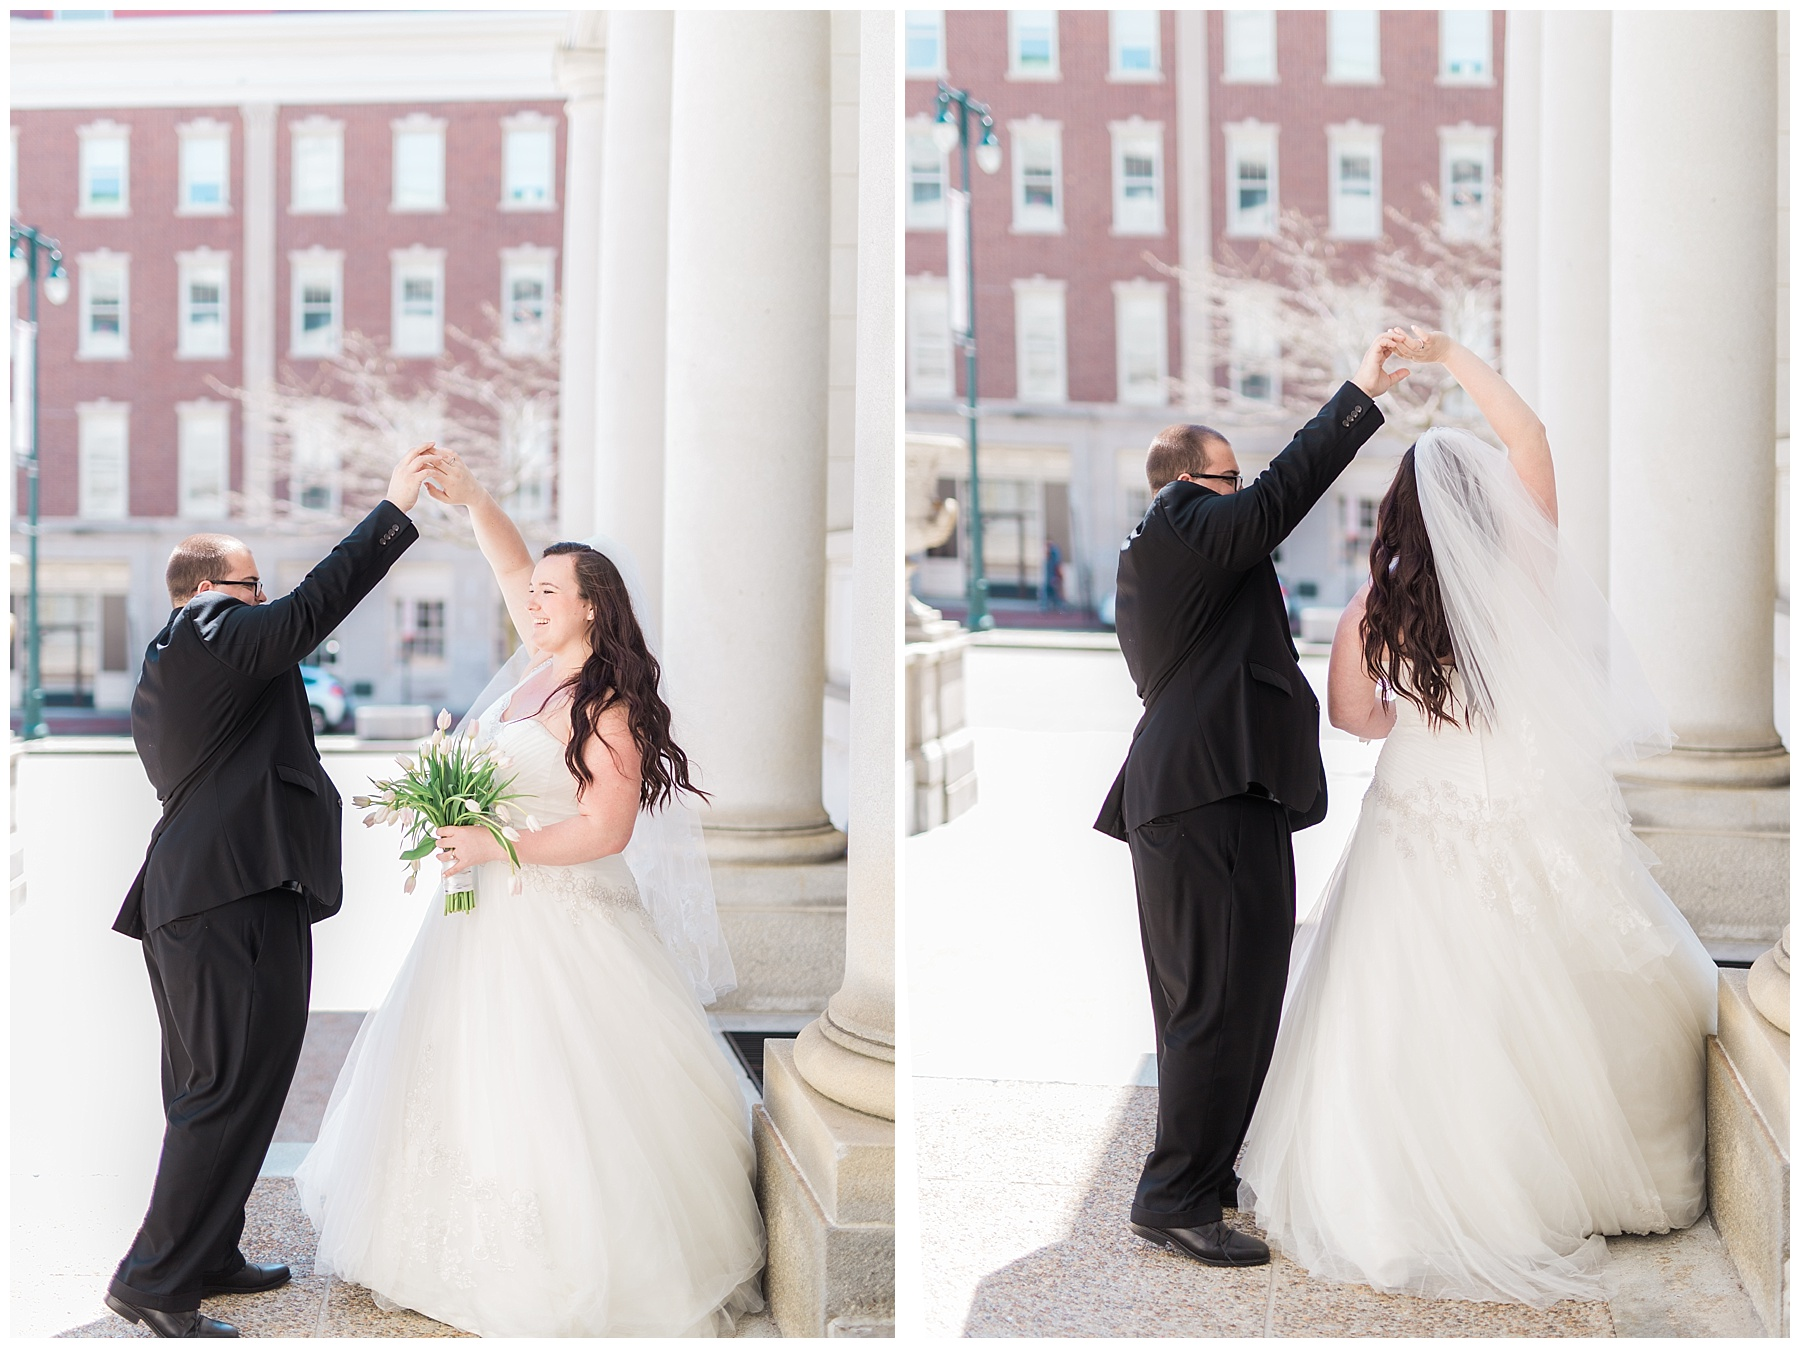 plus size couple in wedding attire taking wedding photos in downtown portland maine at city hall dancing holding tulips